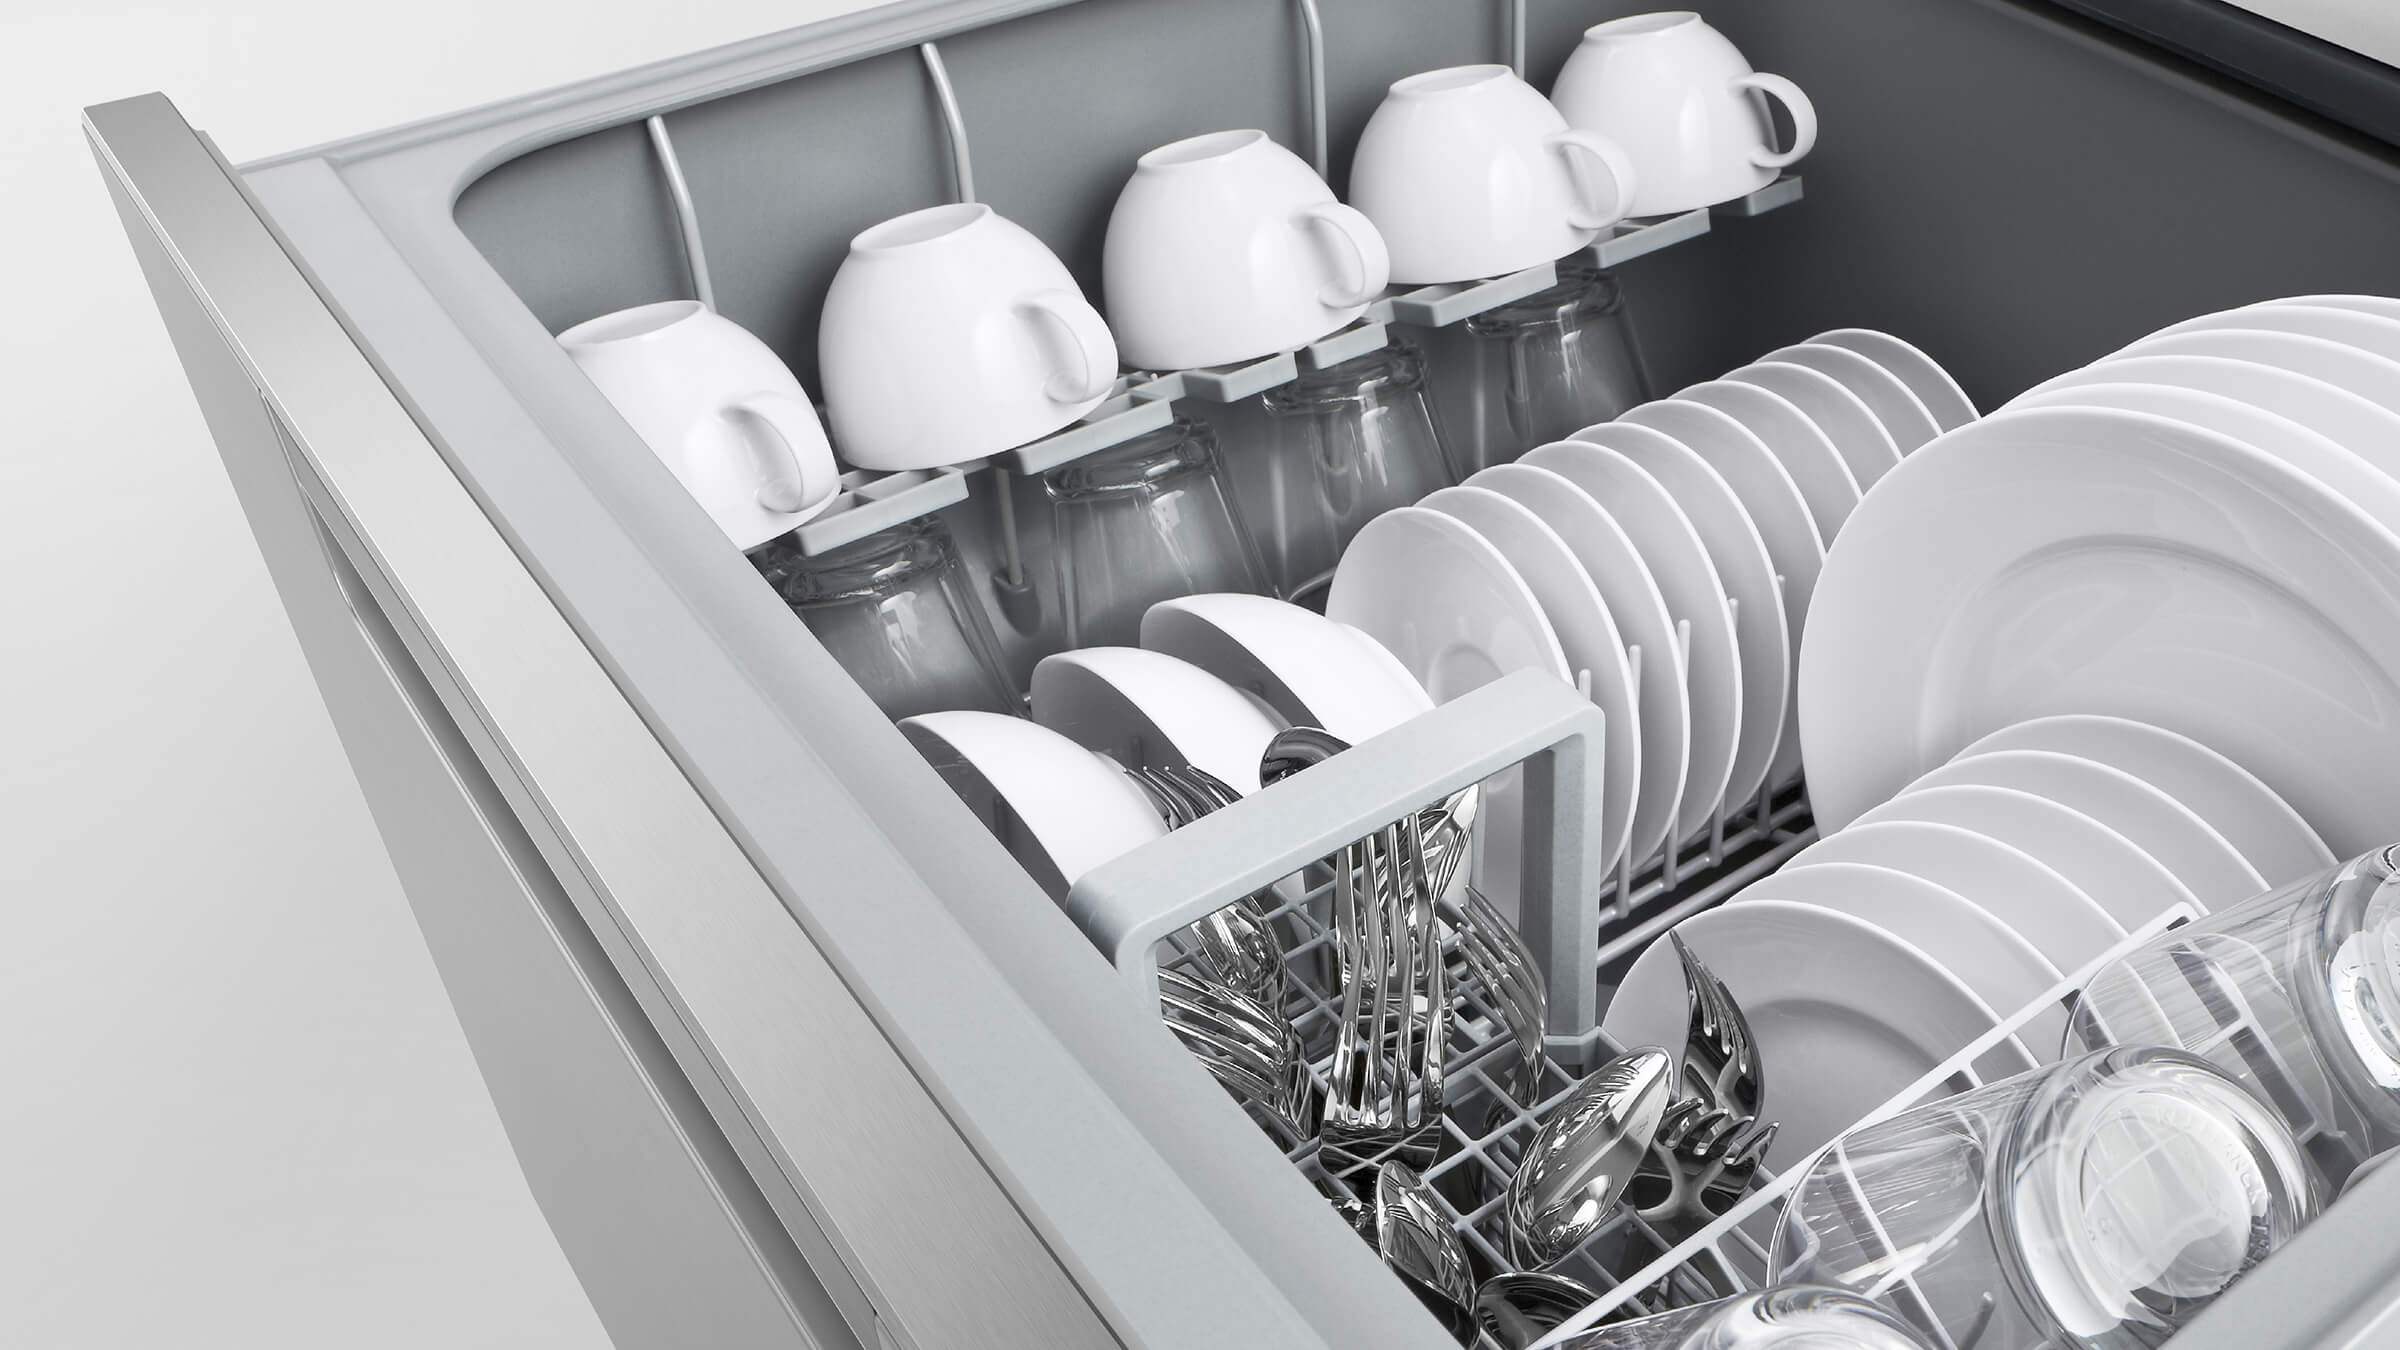 Dishwasher Drawers Vs Standard